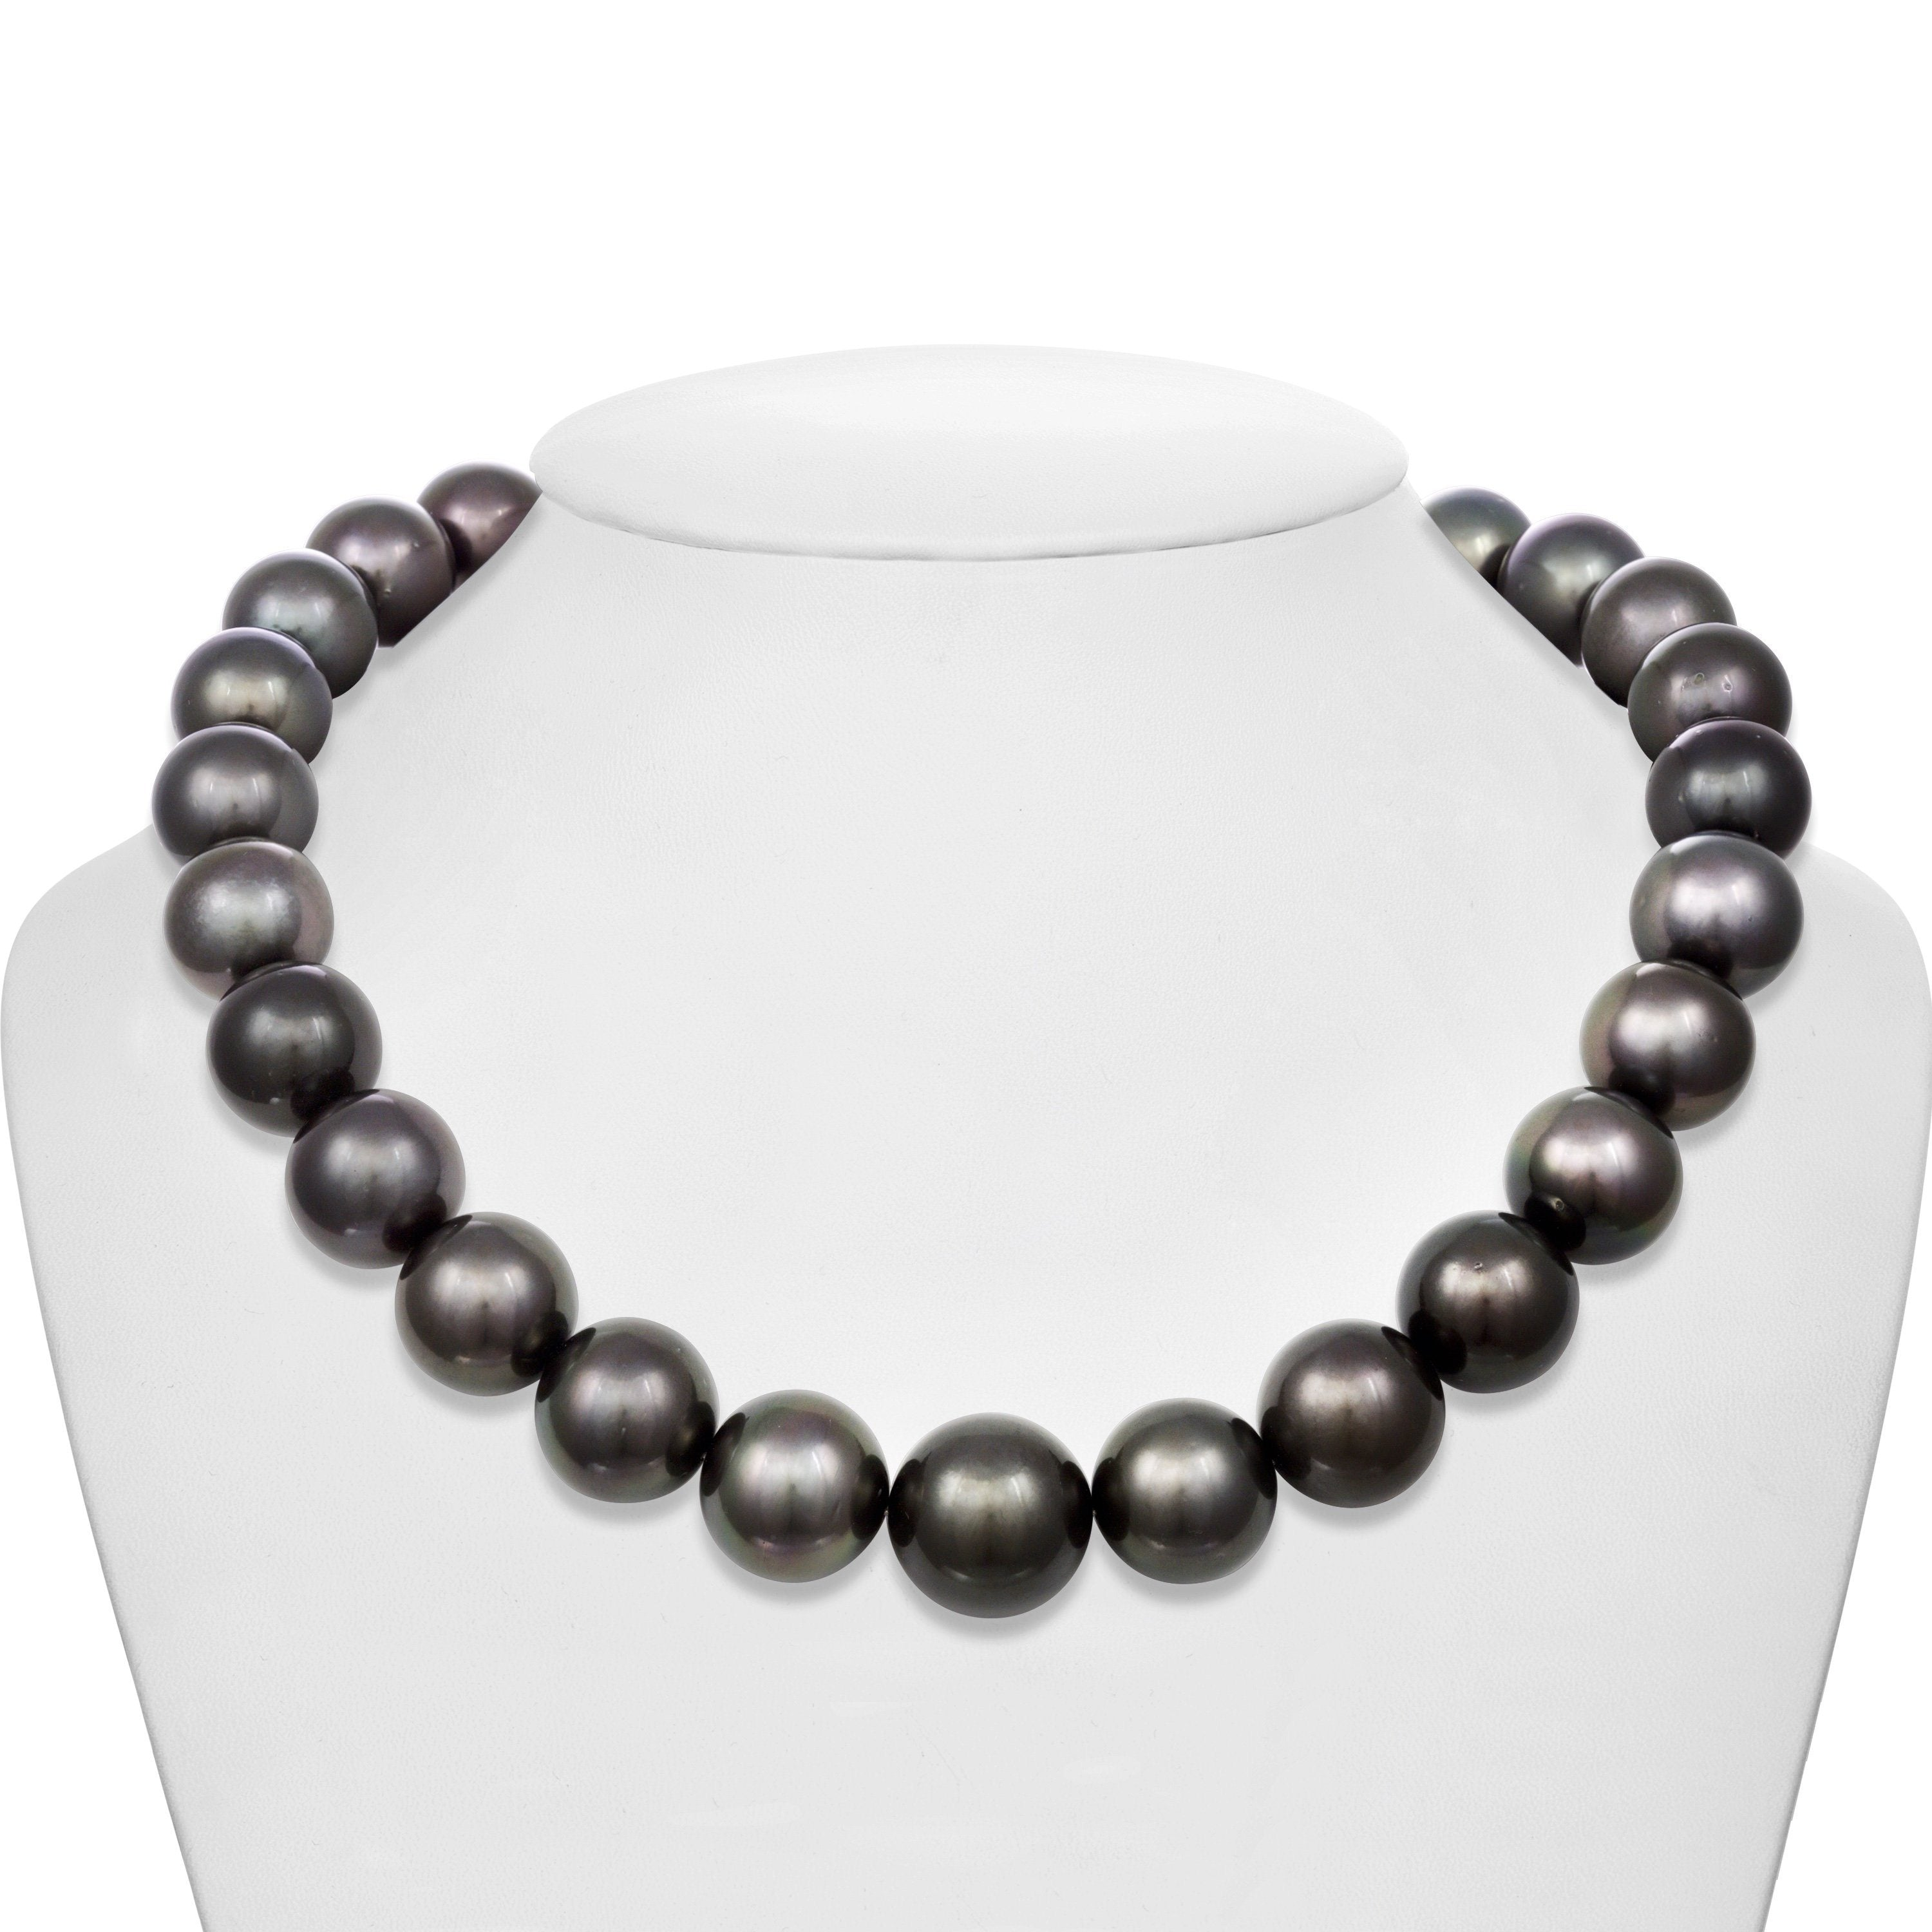 15.0-17.9 mm AA+/AAA Tahitian Round Pearl Necklace